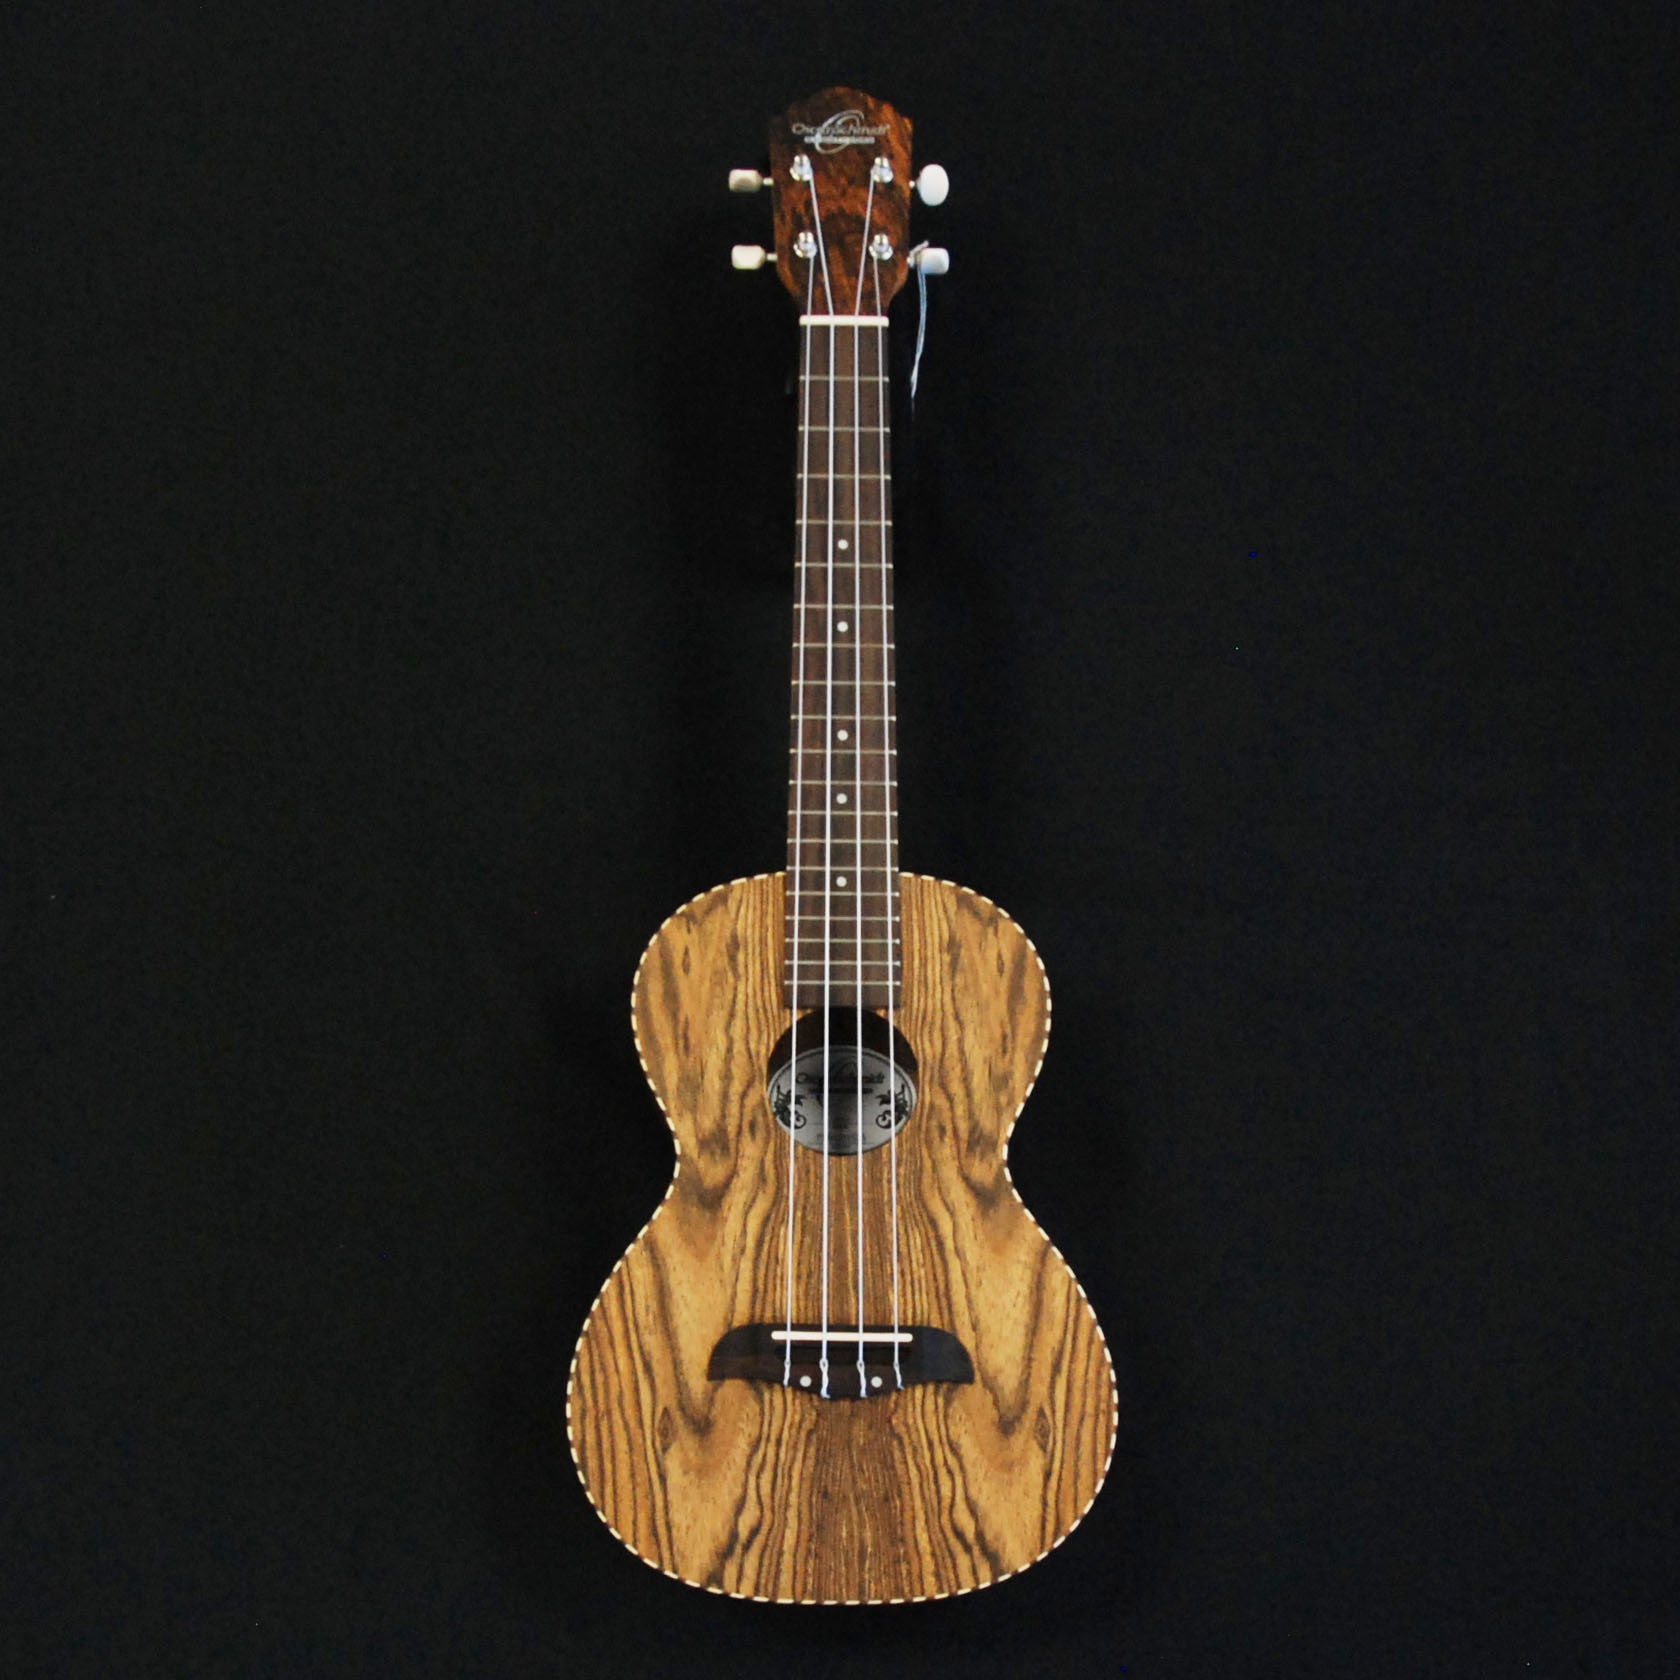 Shop online for Oscar Schmidt OU9 Concert Ukulele Bocote today.  Now available for purchase from Midlothian Music of Orland Park, Illinois, USA